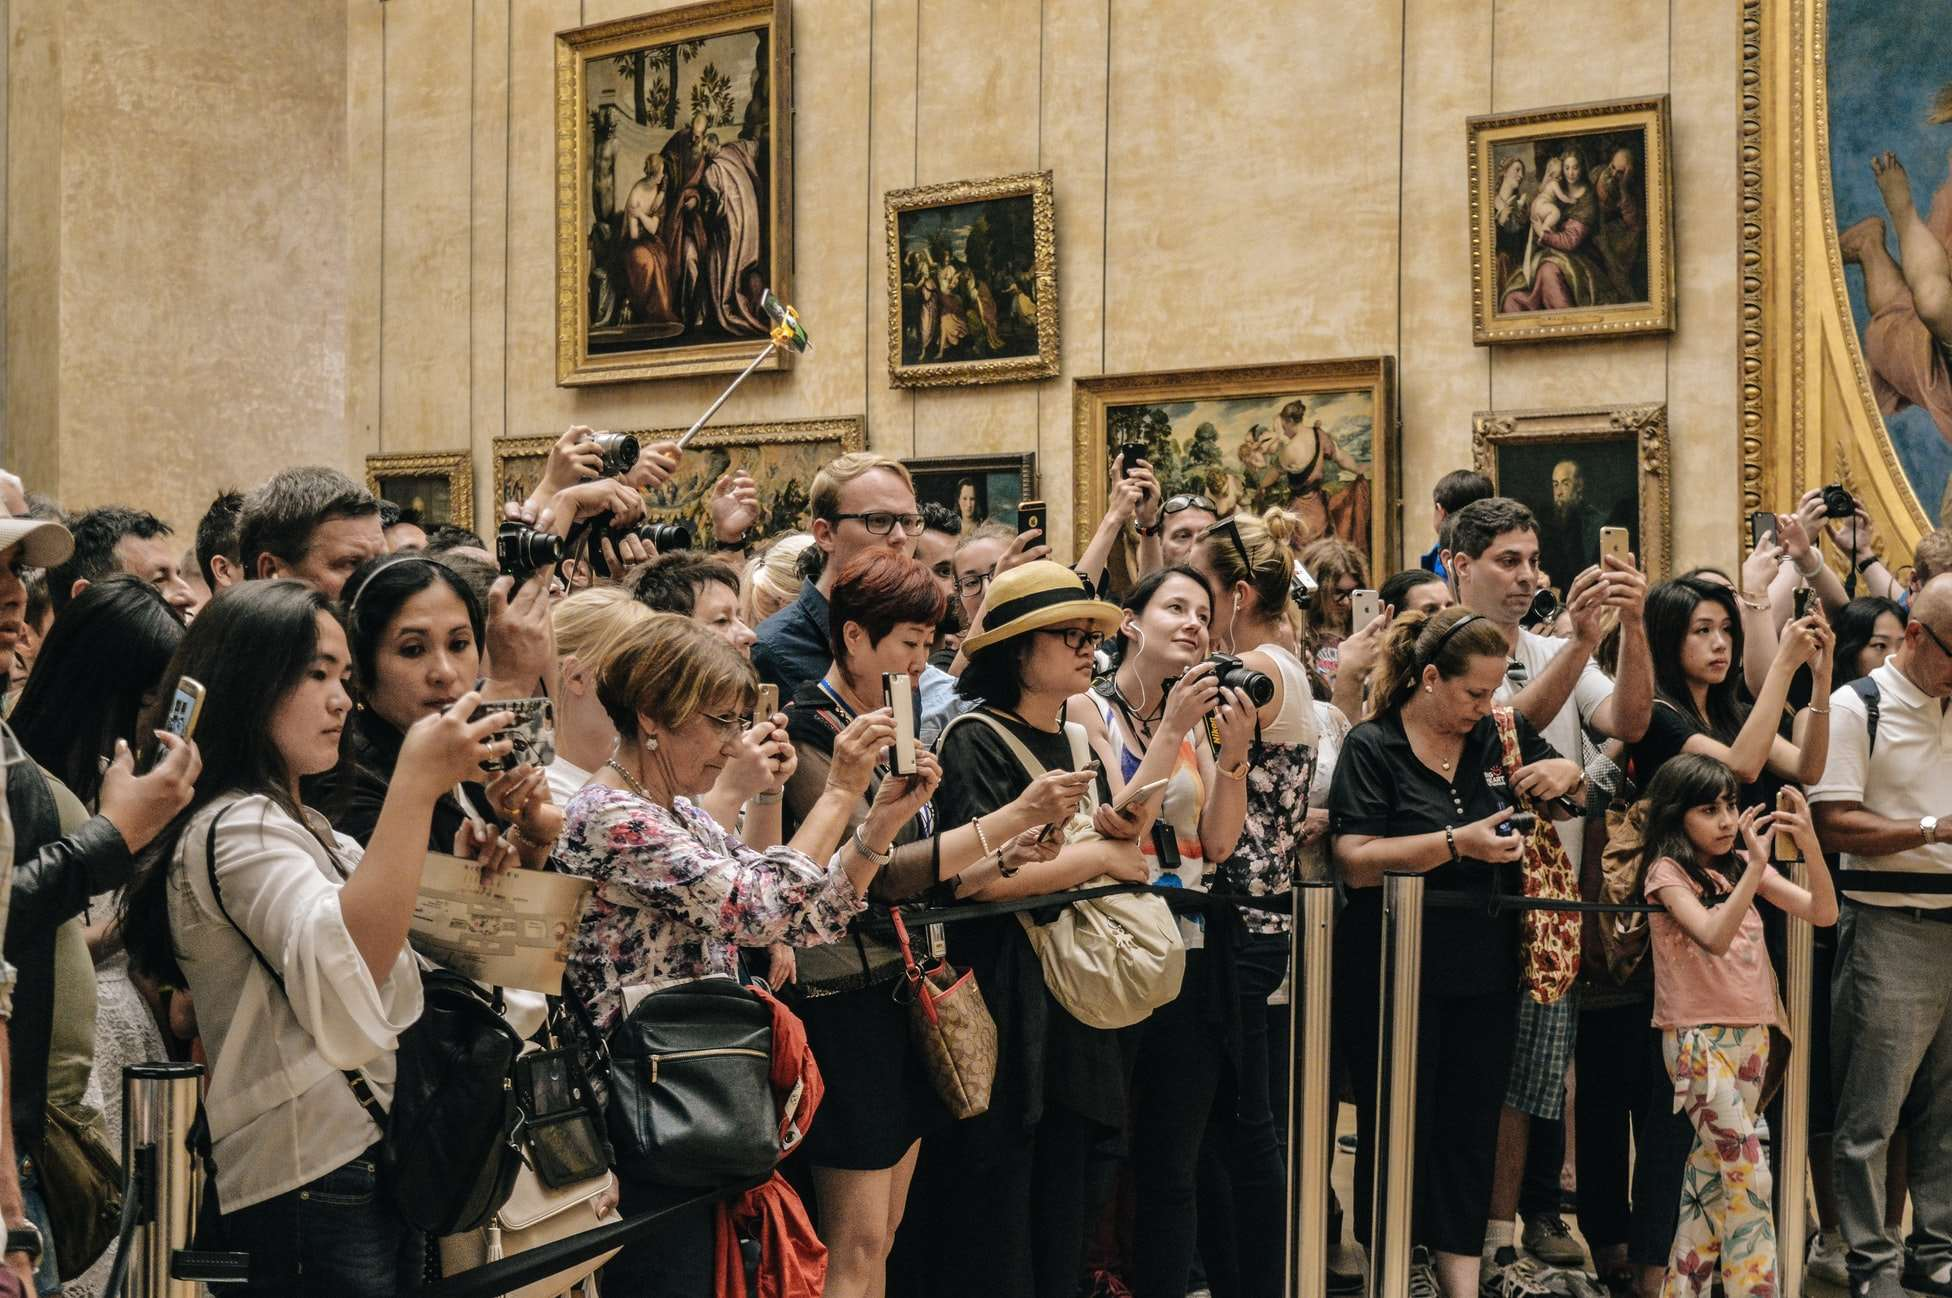 Louvre visitors with phones